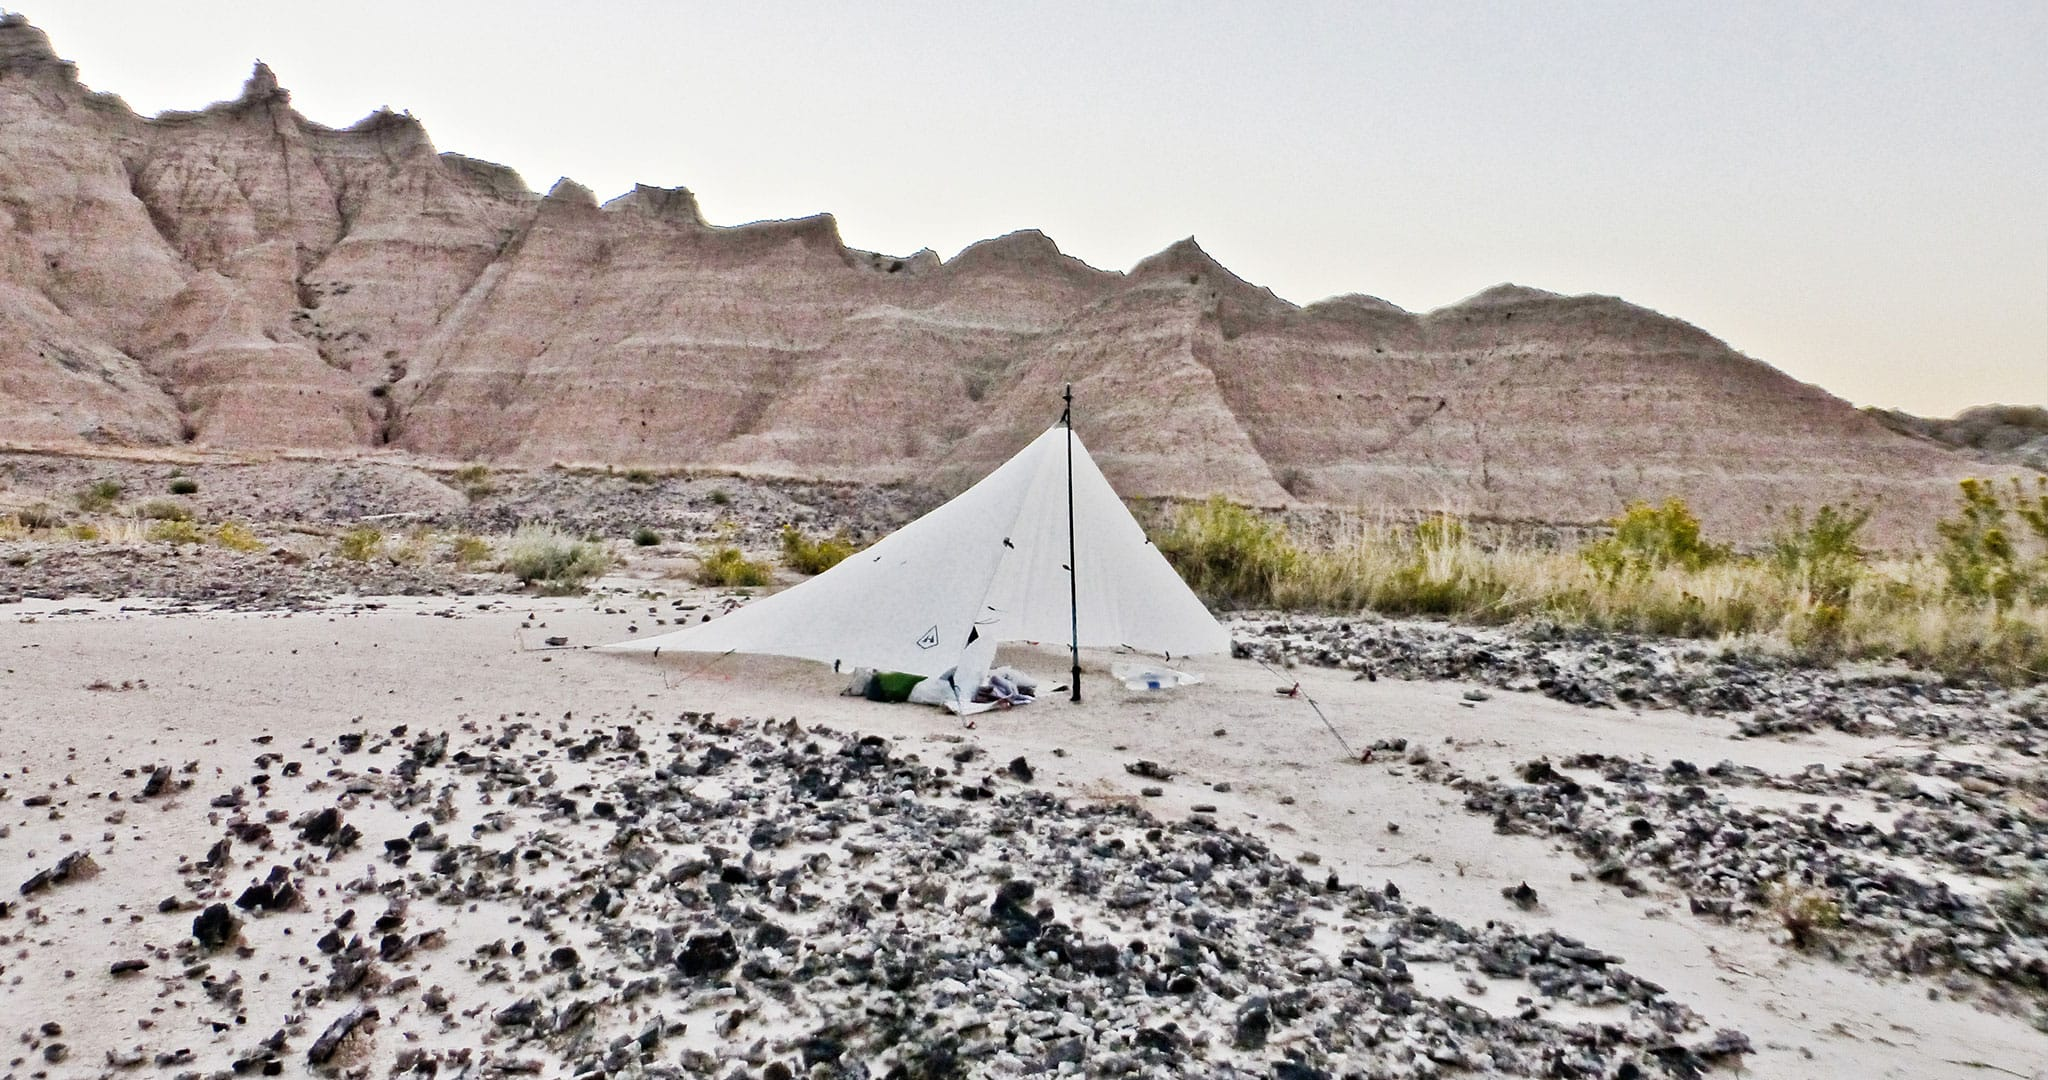 An ultralight backpacking tarp pitched for tarp camping in Badlands National Park | South Dakota, 2016.